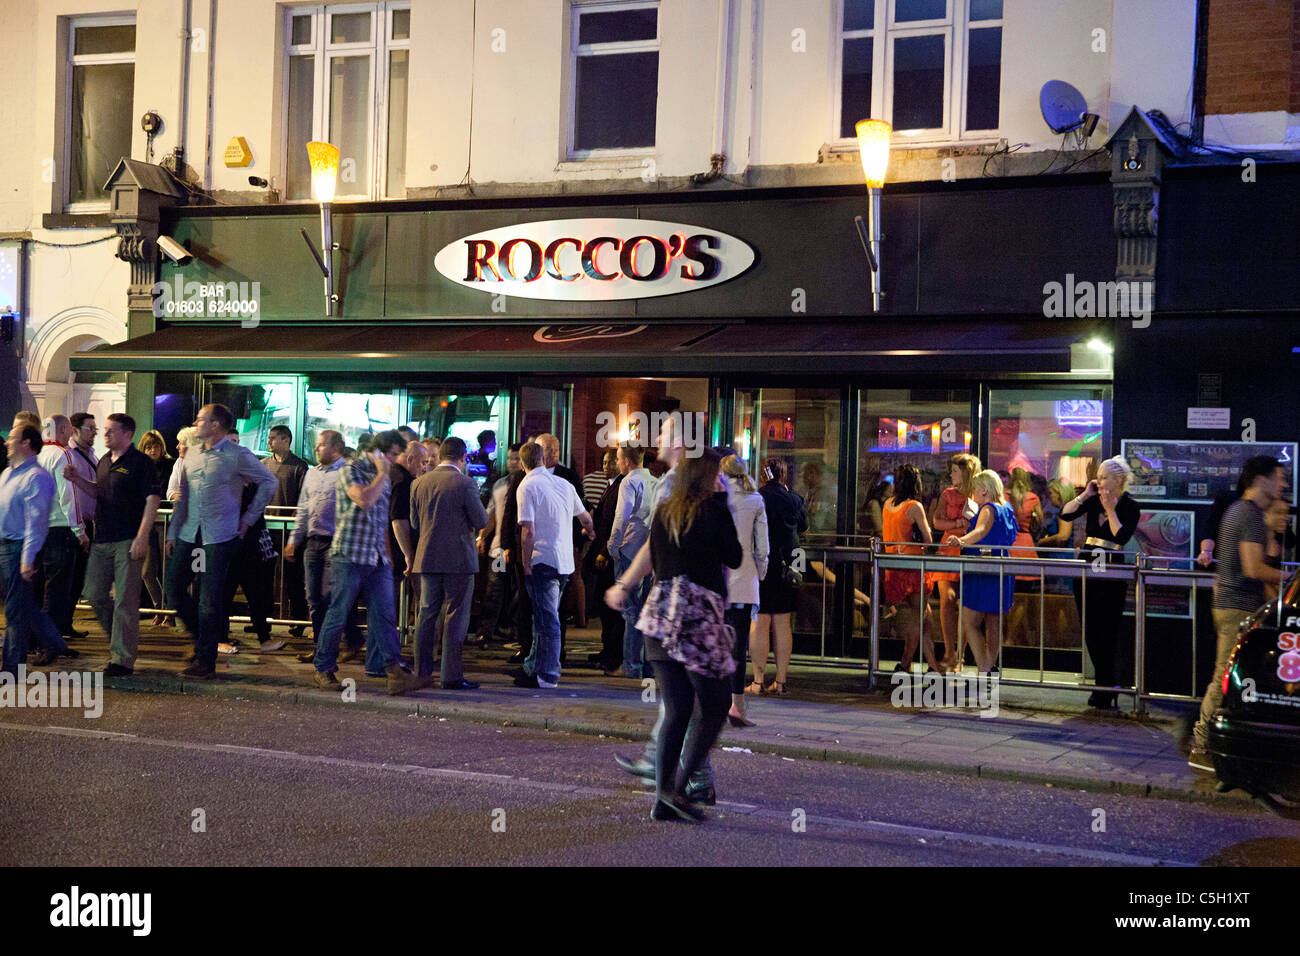 Exterior of a gay bar and nightclub